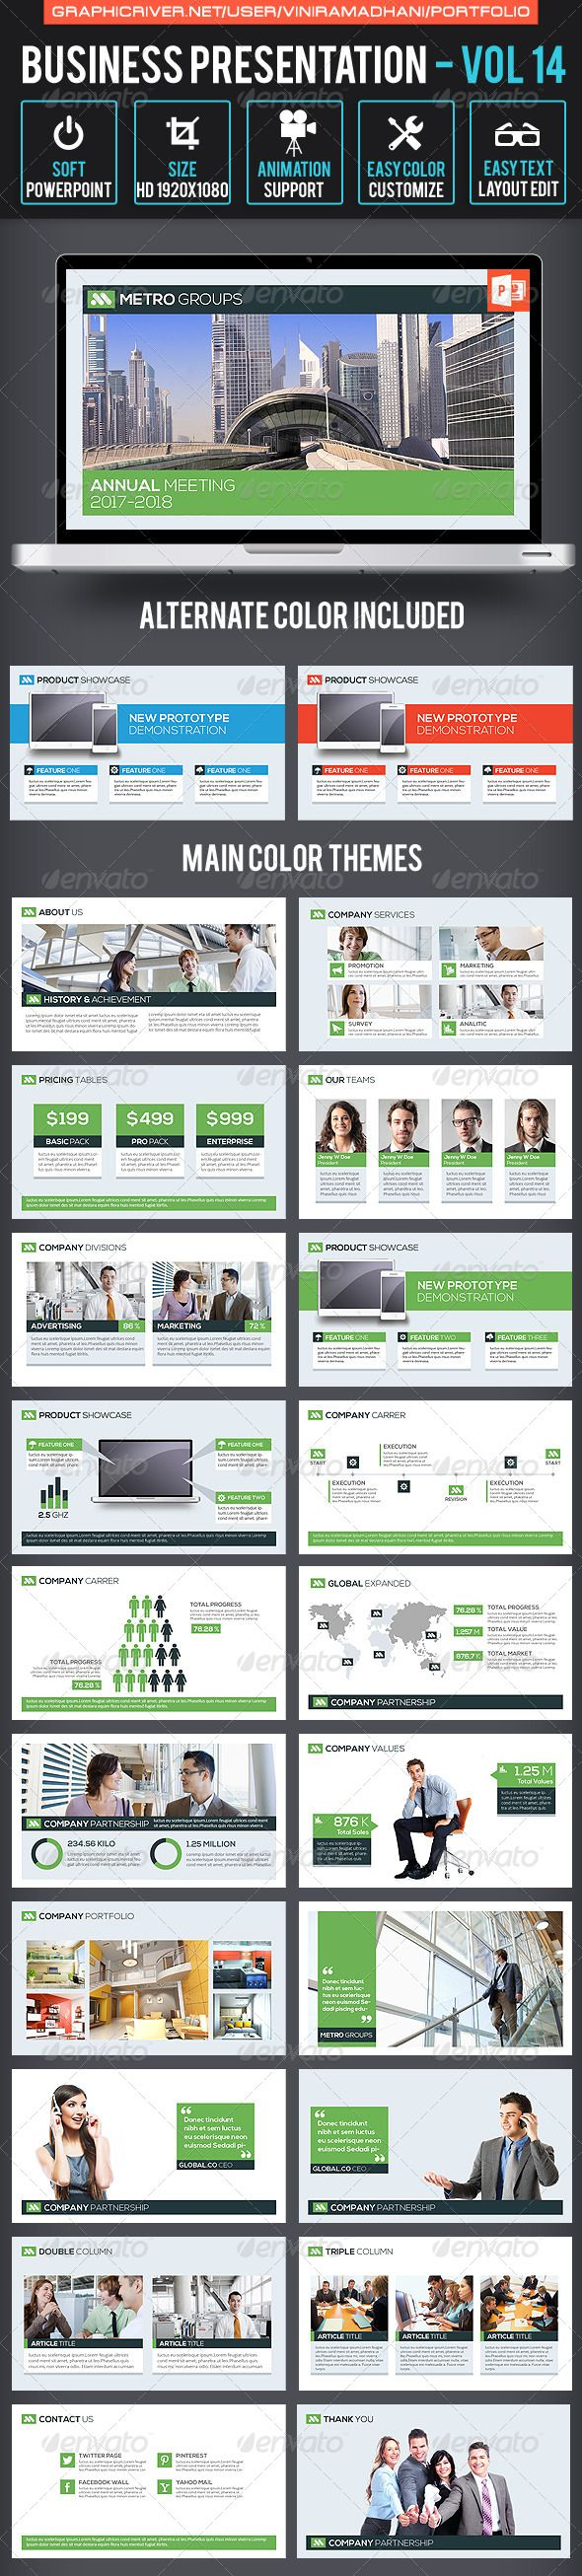 Business Presentation Volume 14 - Business Powerpoint Templates